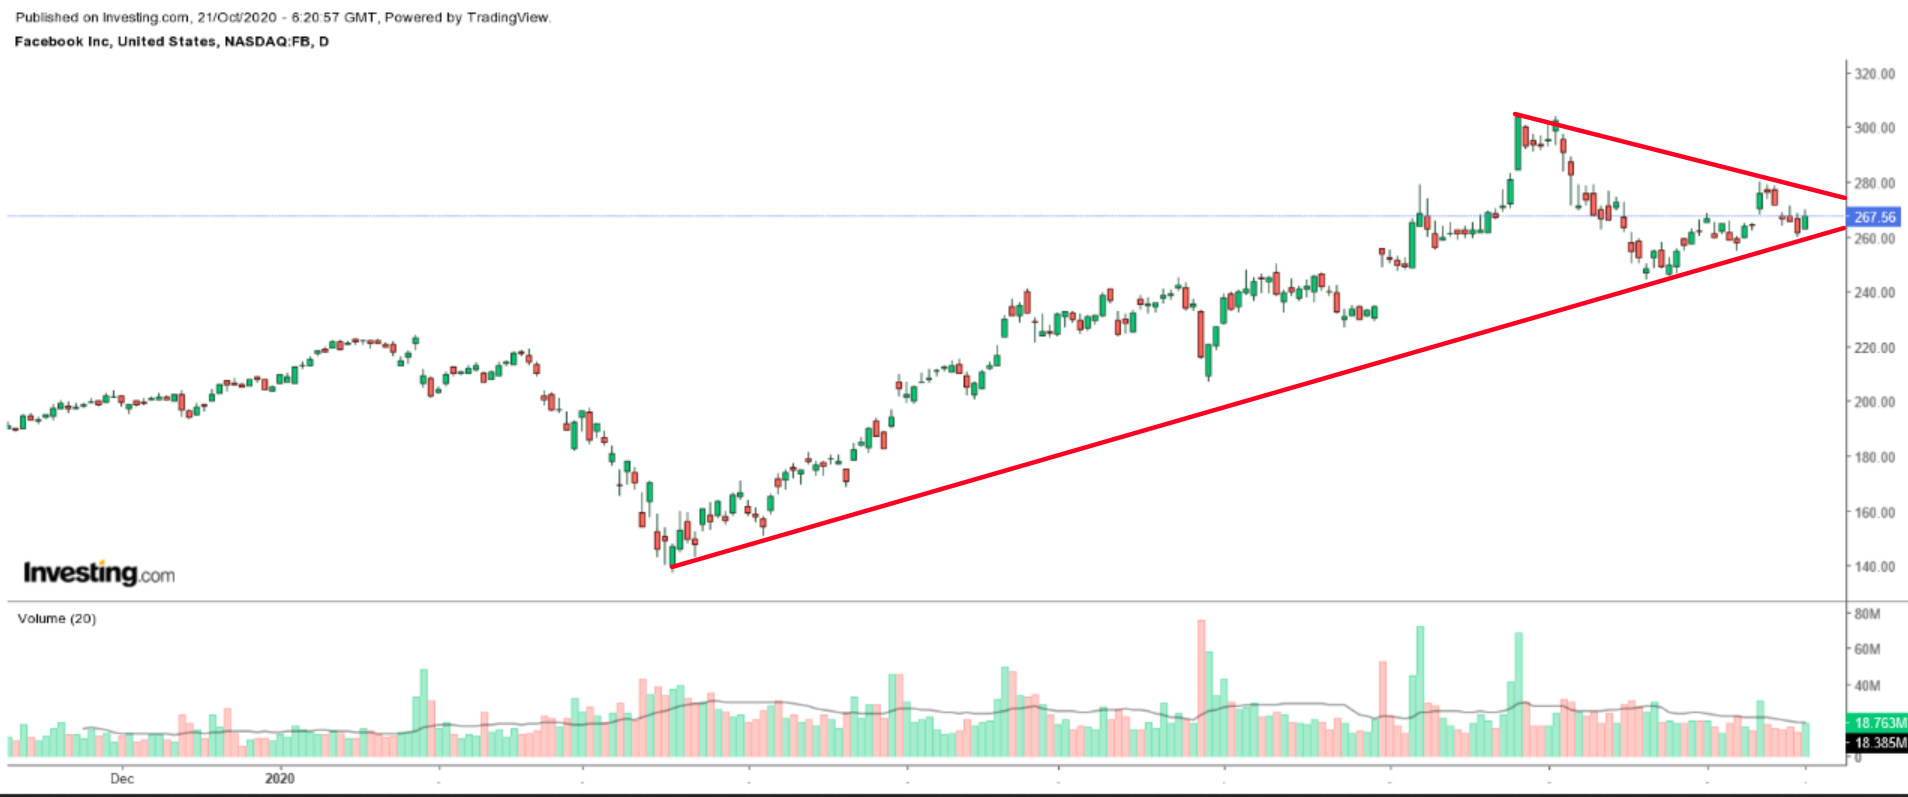 Facebook Daily Chart